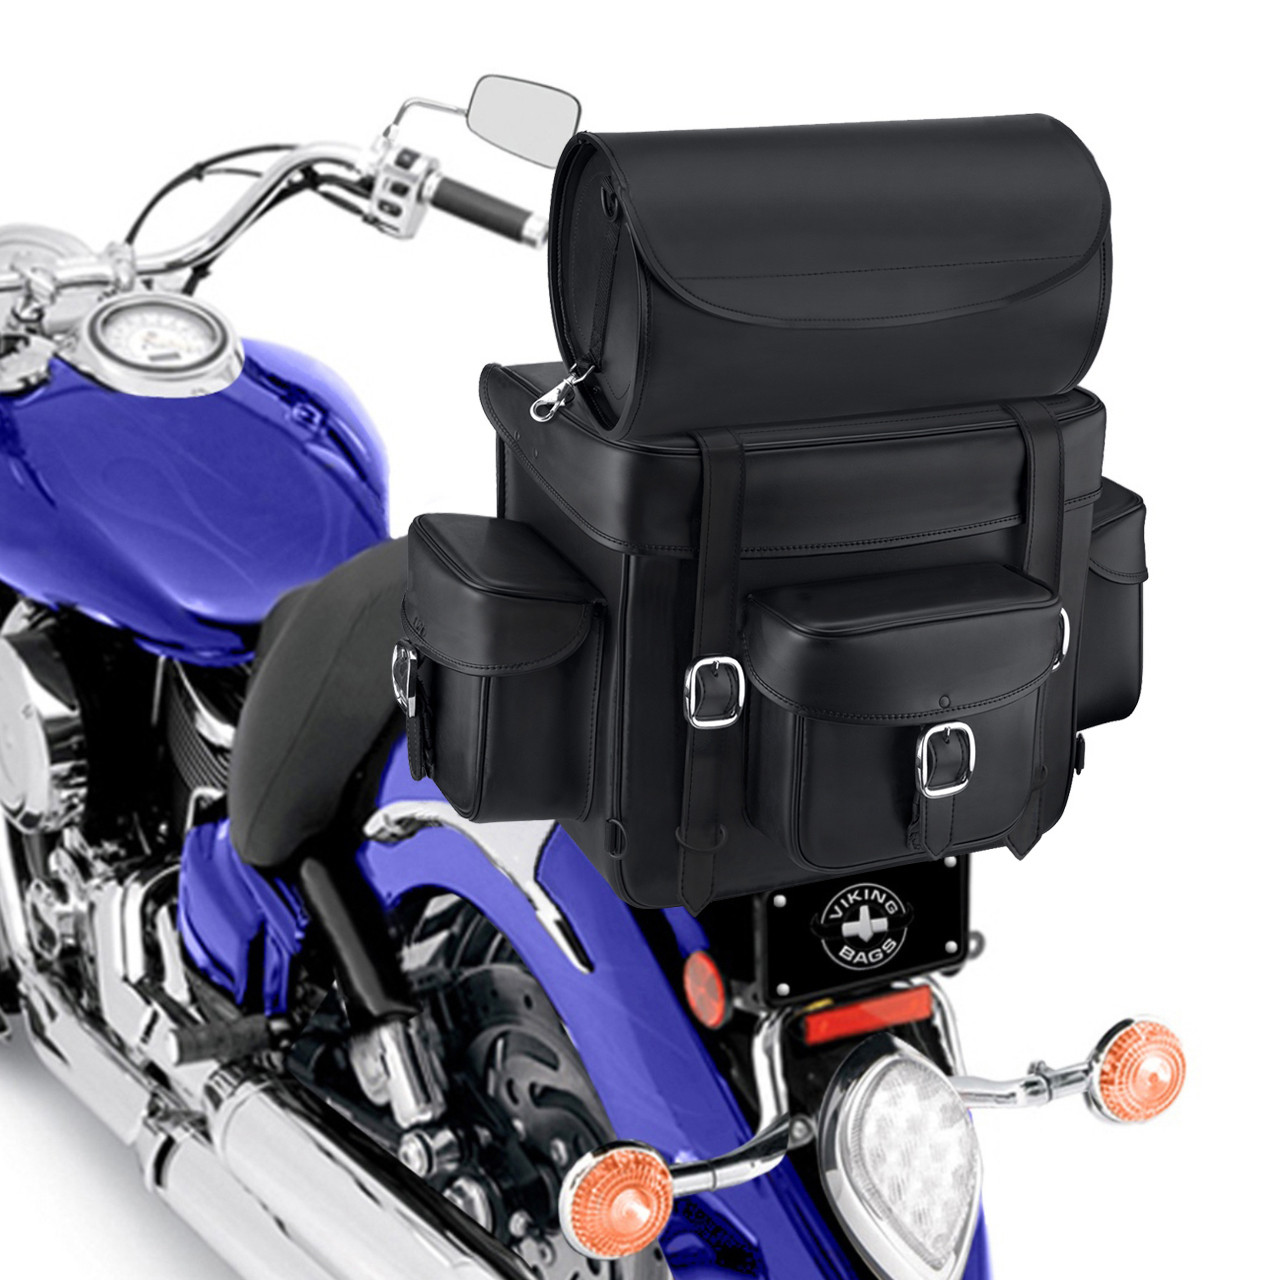 Revival Series Large Sissy Bar Bag On Bike Zoom View